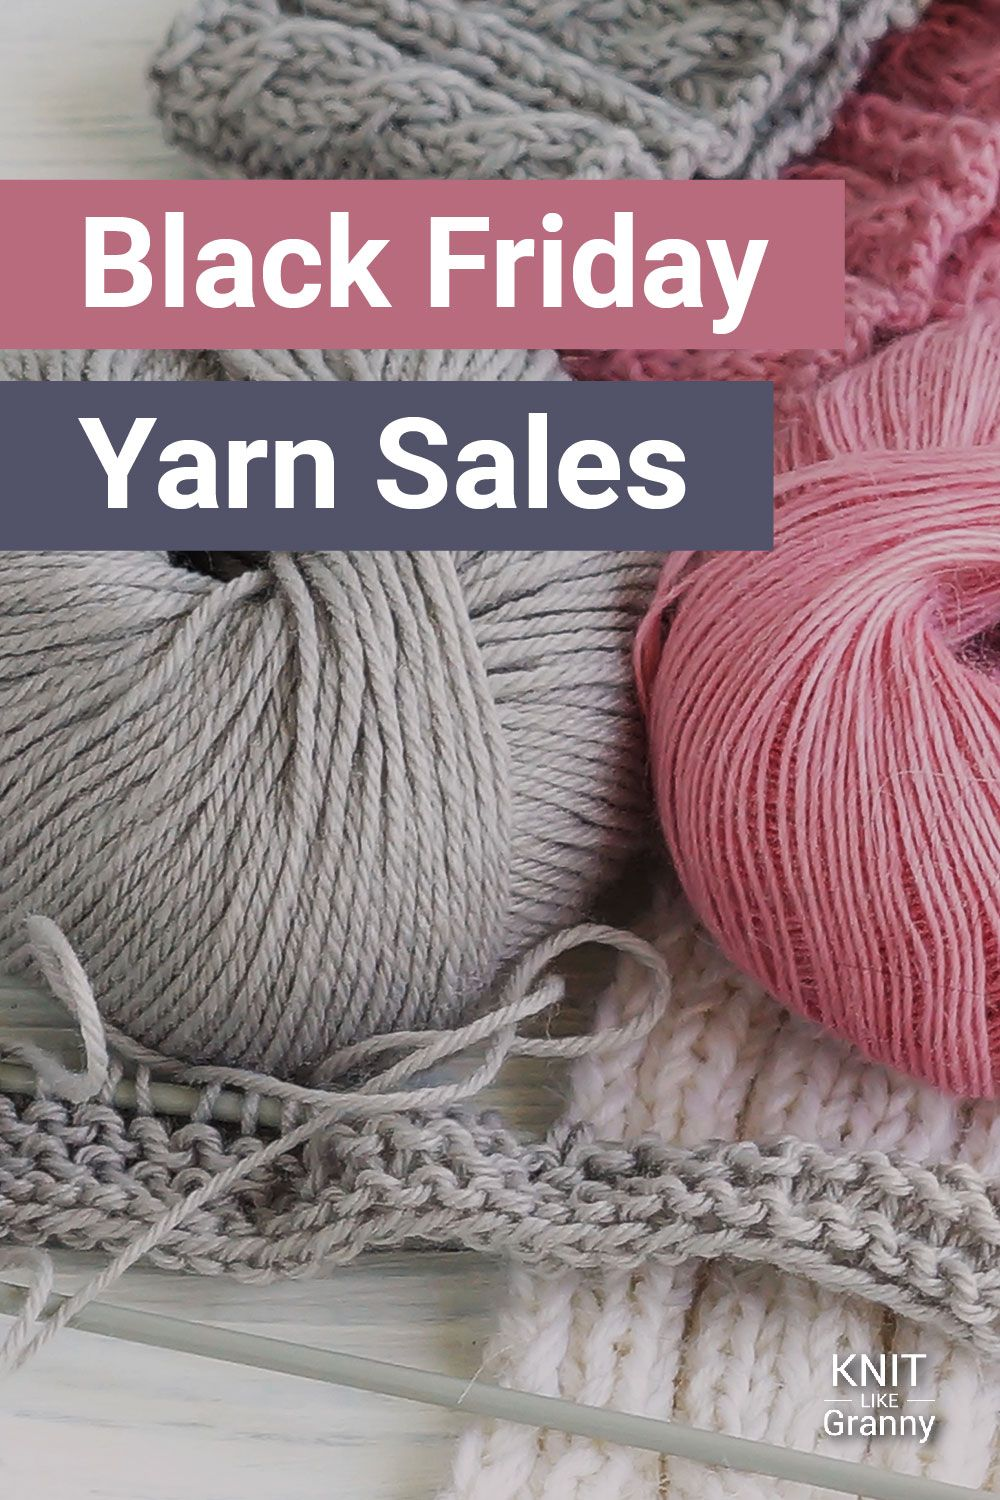 Black Friday Yarn Sale Ultimate Guide To Black Friday And Cyber Monday Knitting Sales For 2020 Yarn For Sale Knitting Black Friday